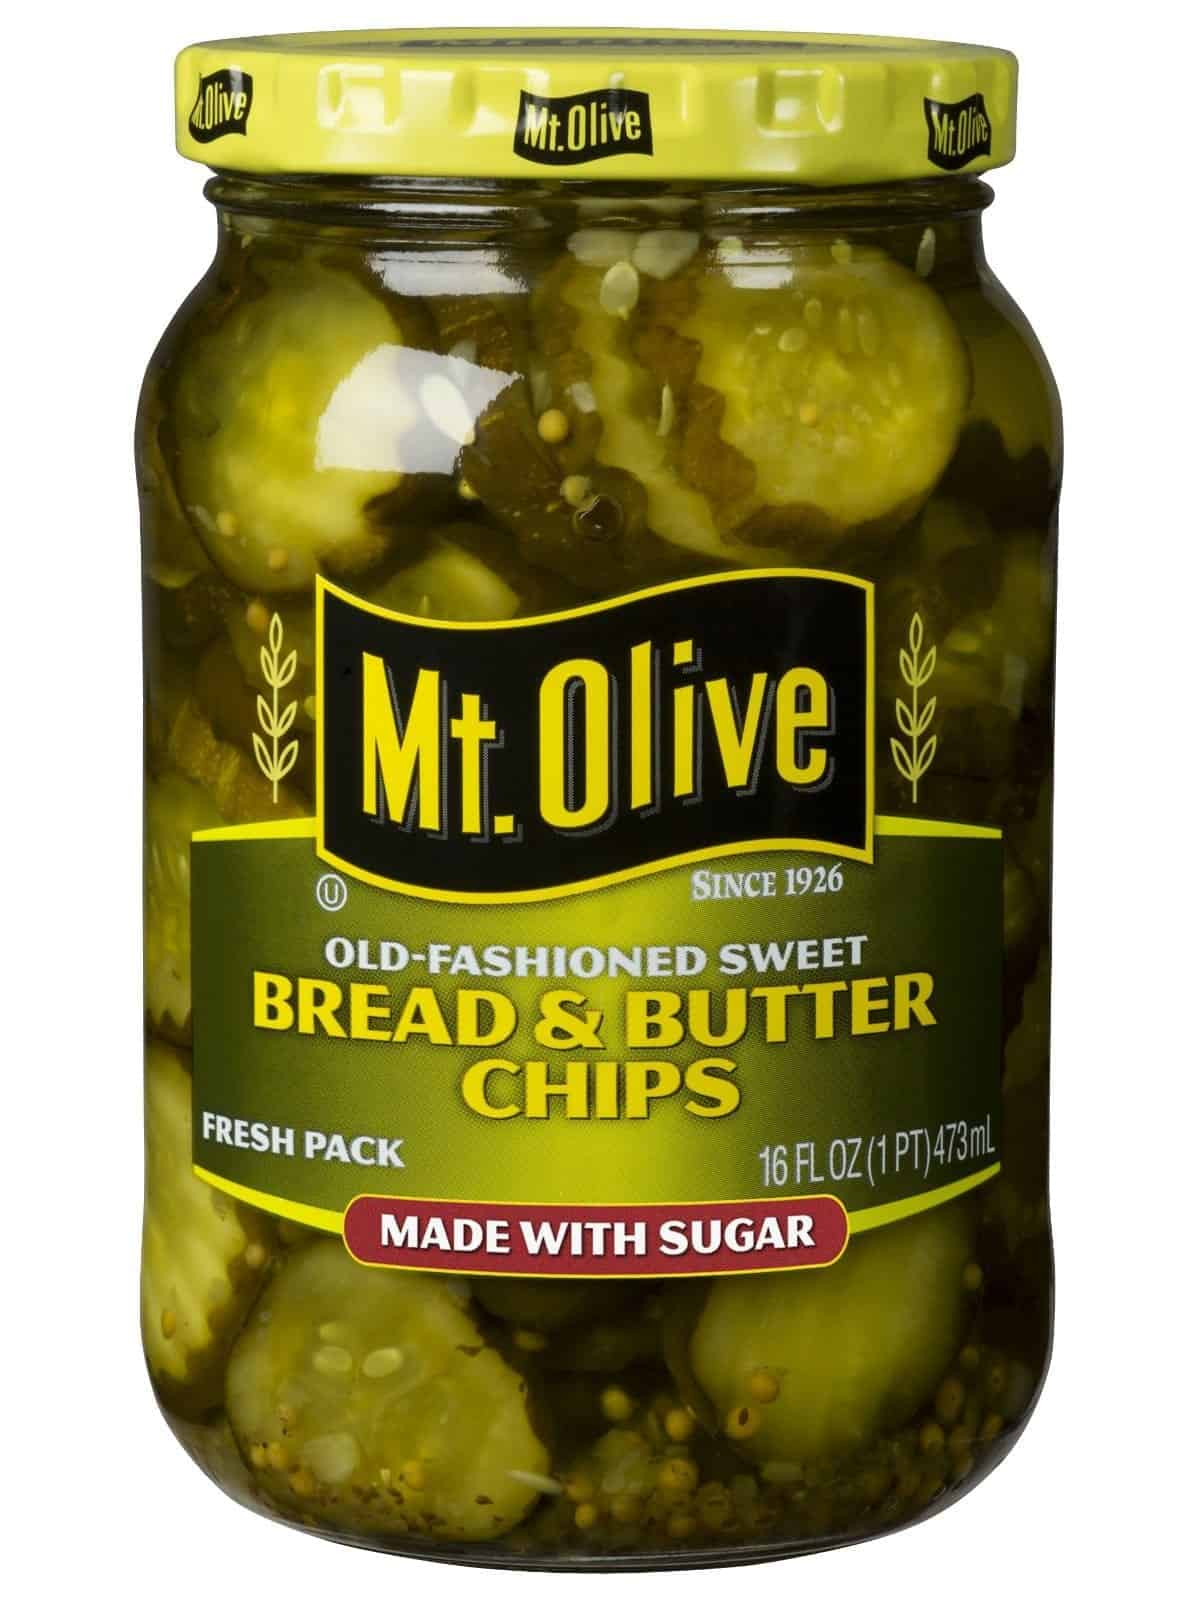 Mount Olive Bread and Butter Chips - Sliced sweet and salty pickles ready to use on your favorite sandwich or as a side dish.